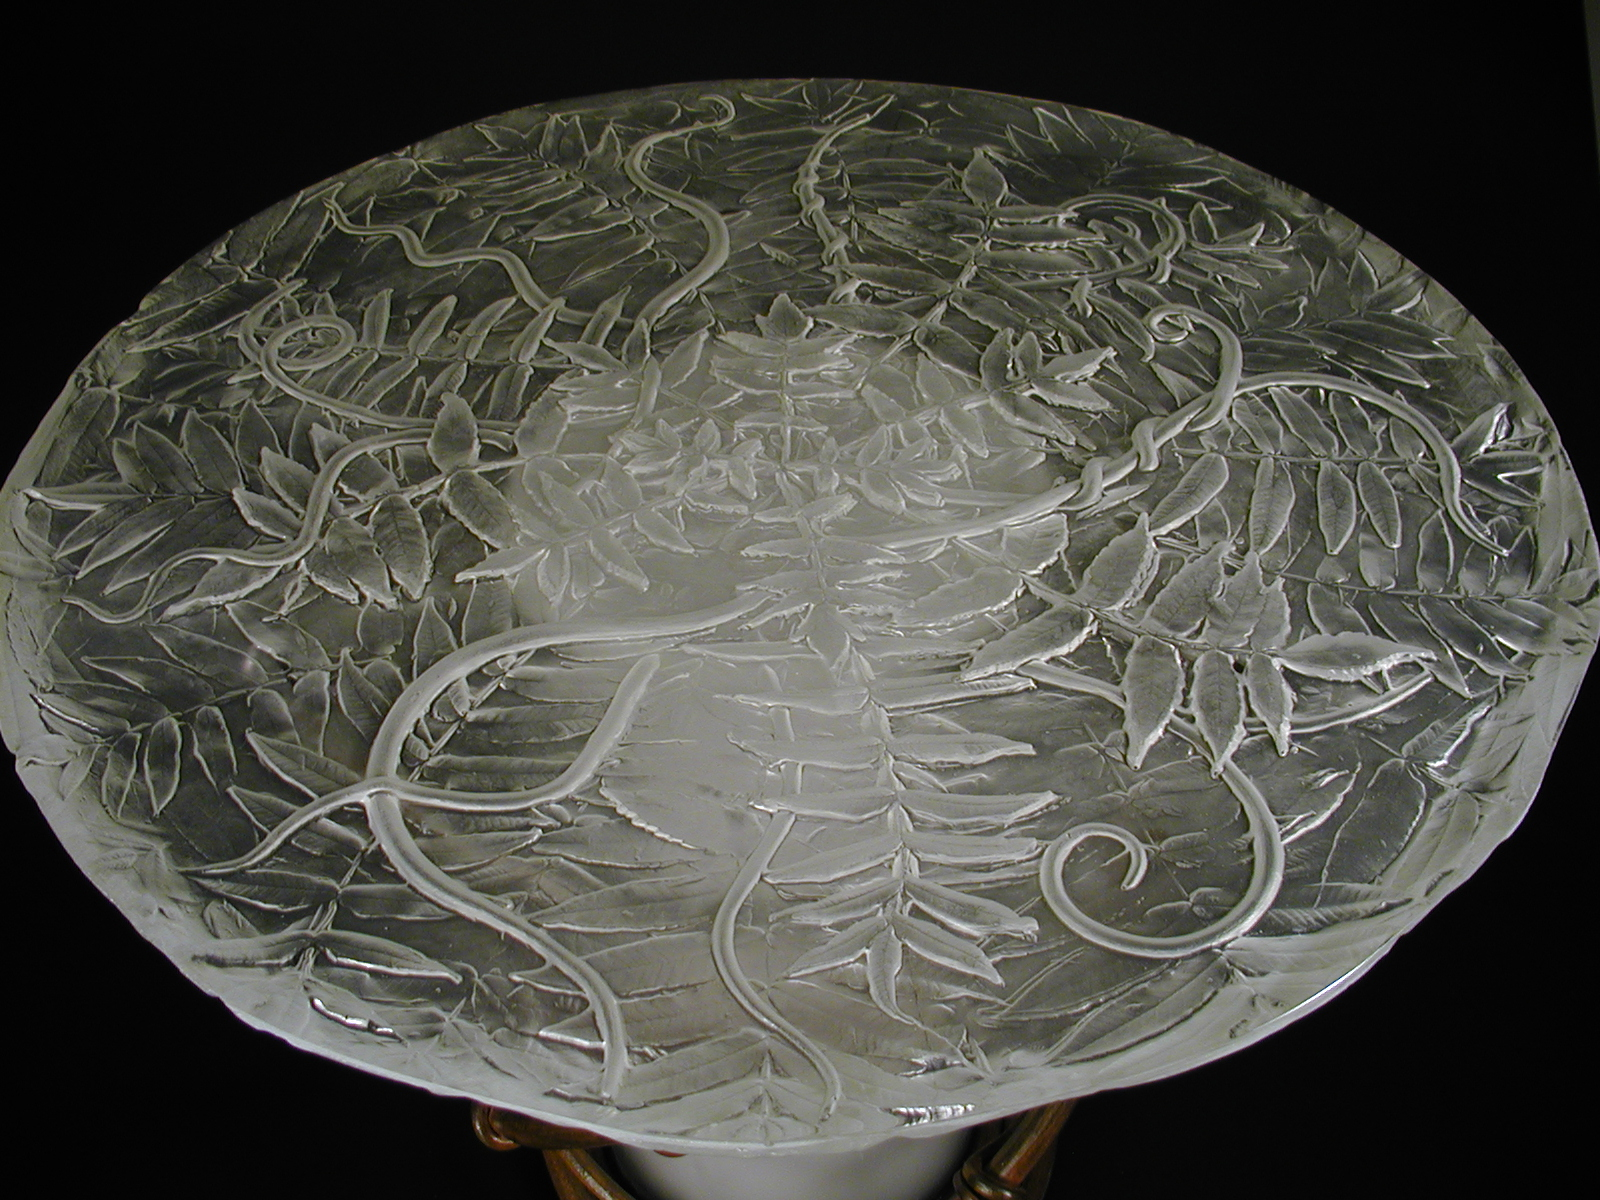 Top view of table with cast glass top containing sumac pattern, base of forged iron twined vines around blown glass center.